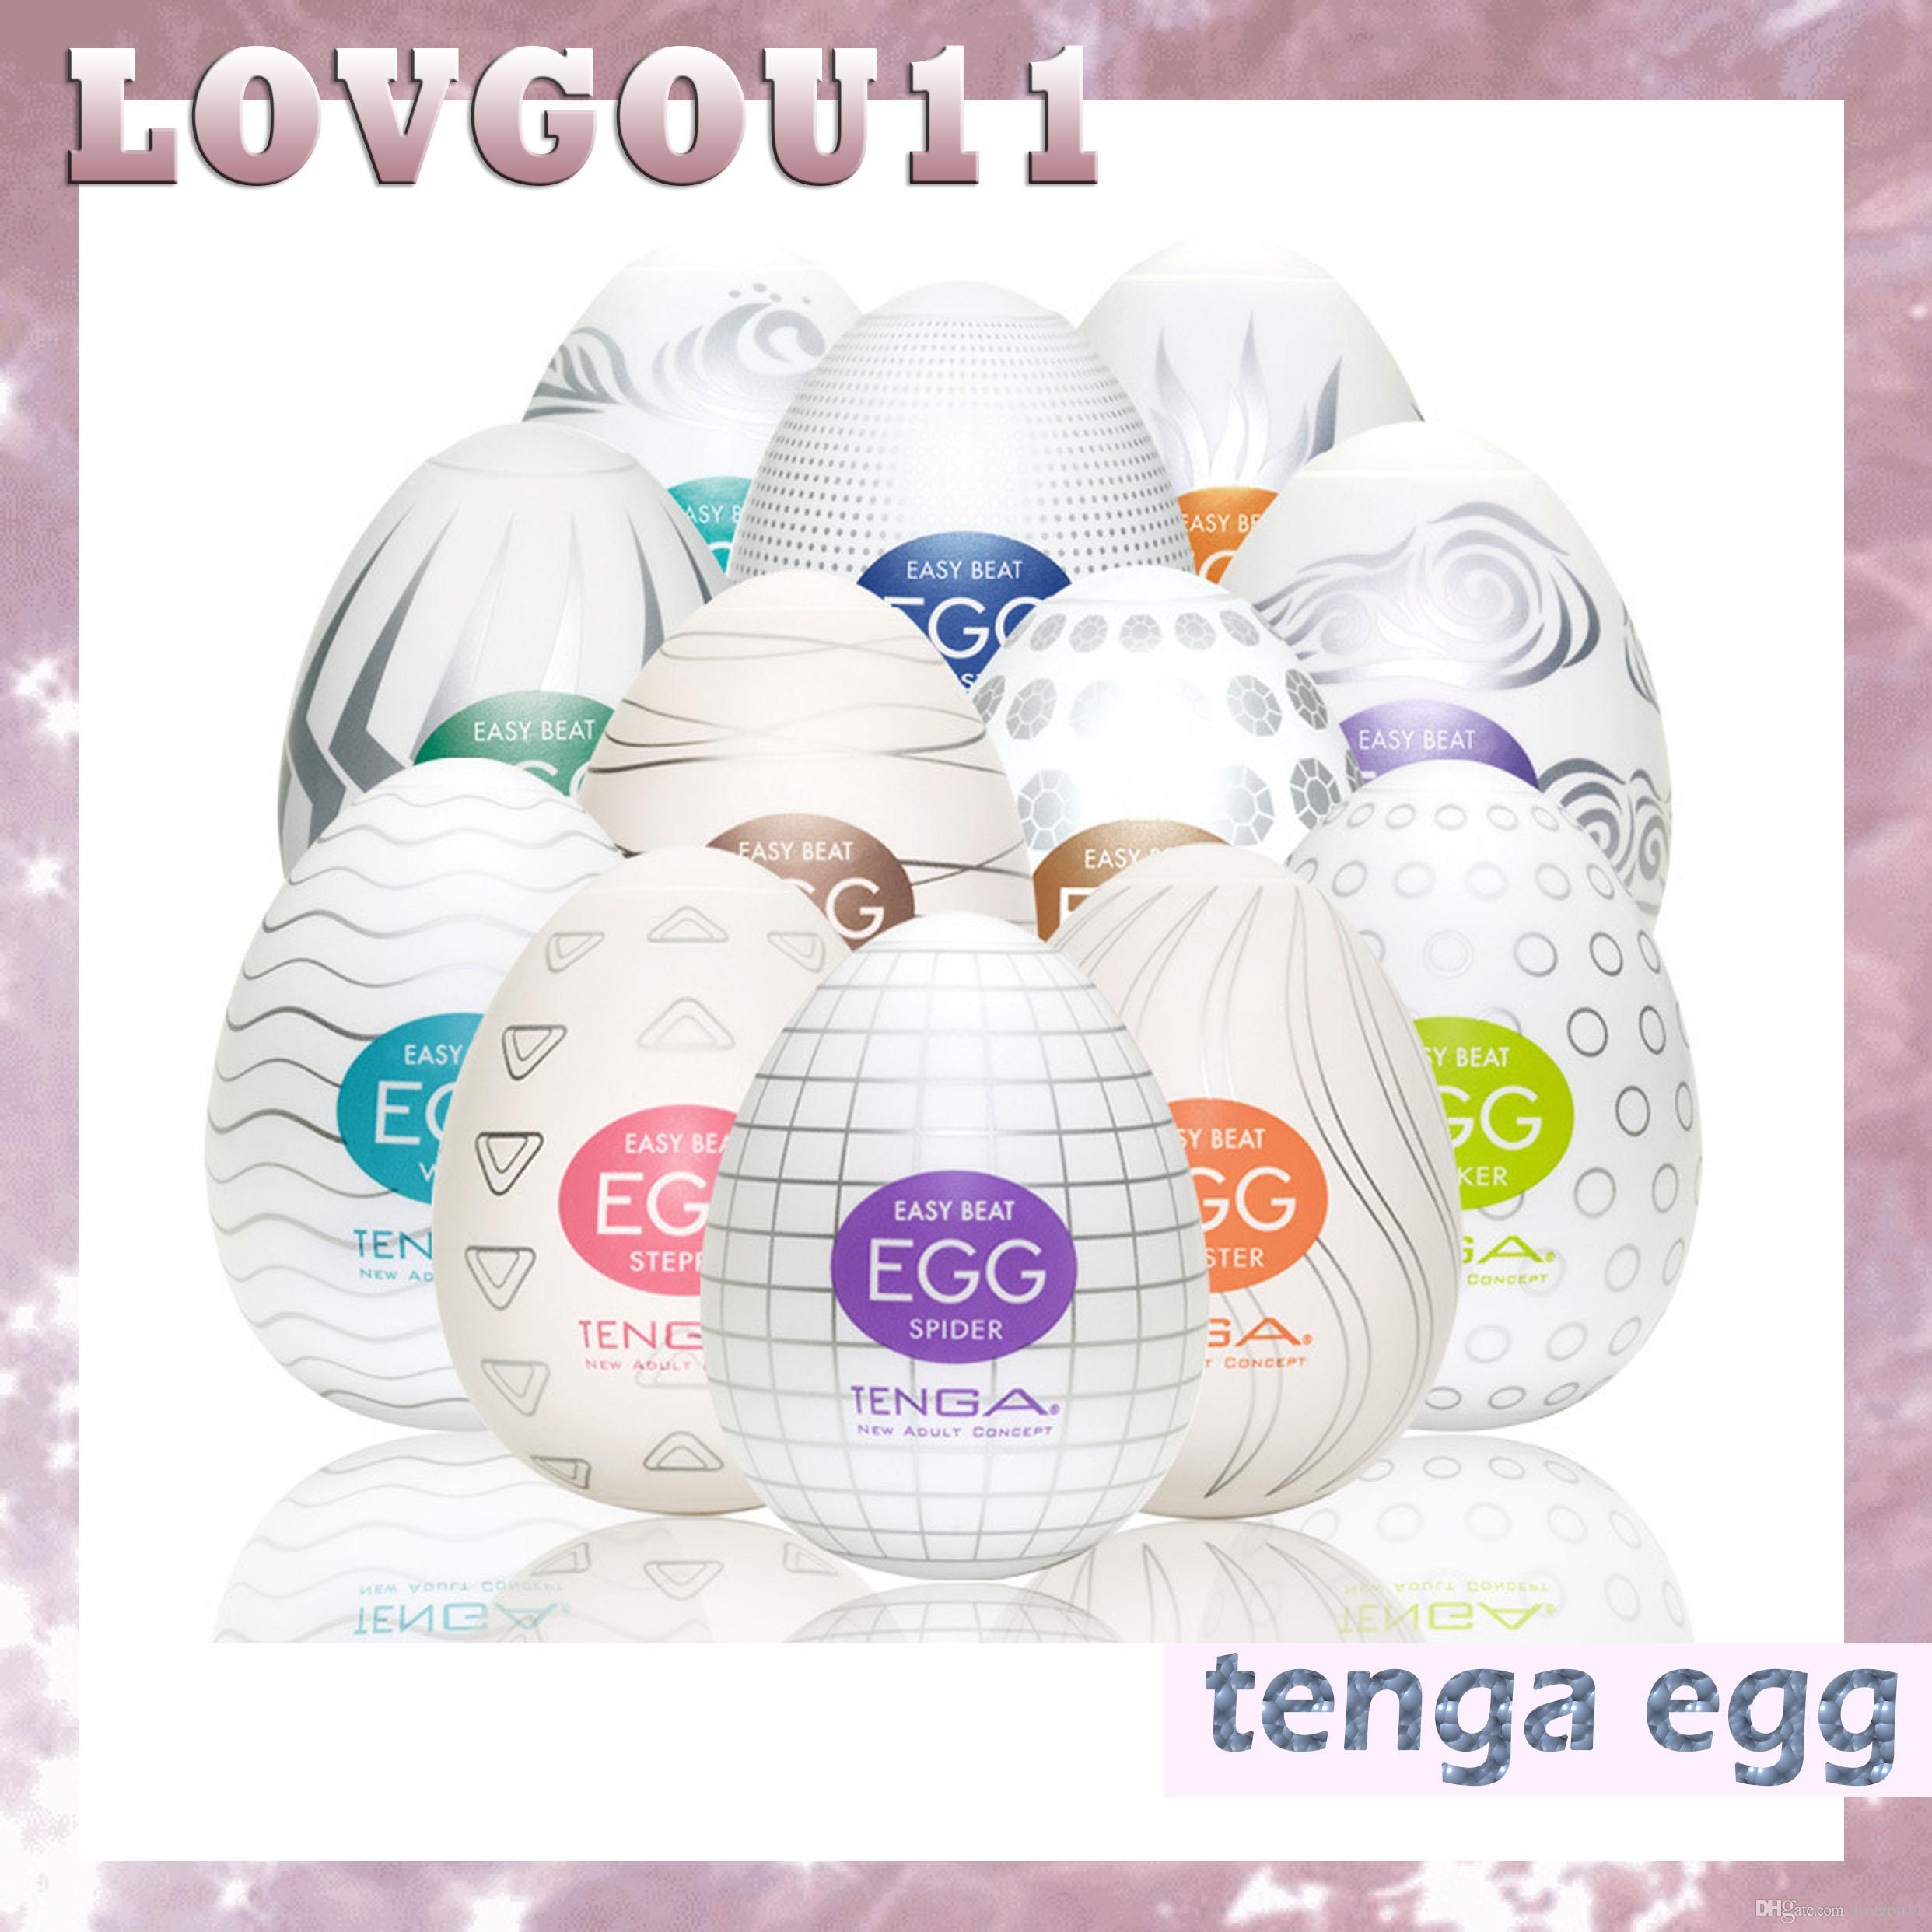 Hot Sale Tenga Male Masturbator Egg Cup Sex Toys Silicone Pussy Clicker Pocket For Man Products Dhl 680009 1 Full Body Therapy